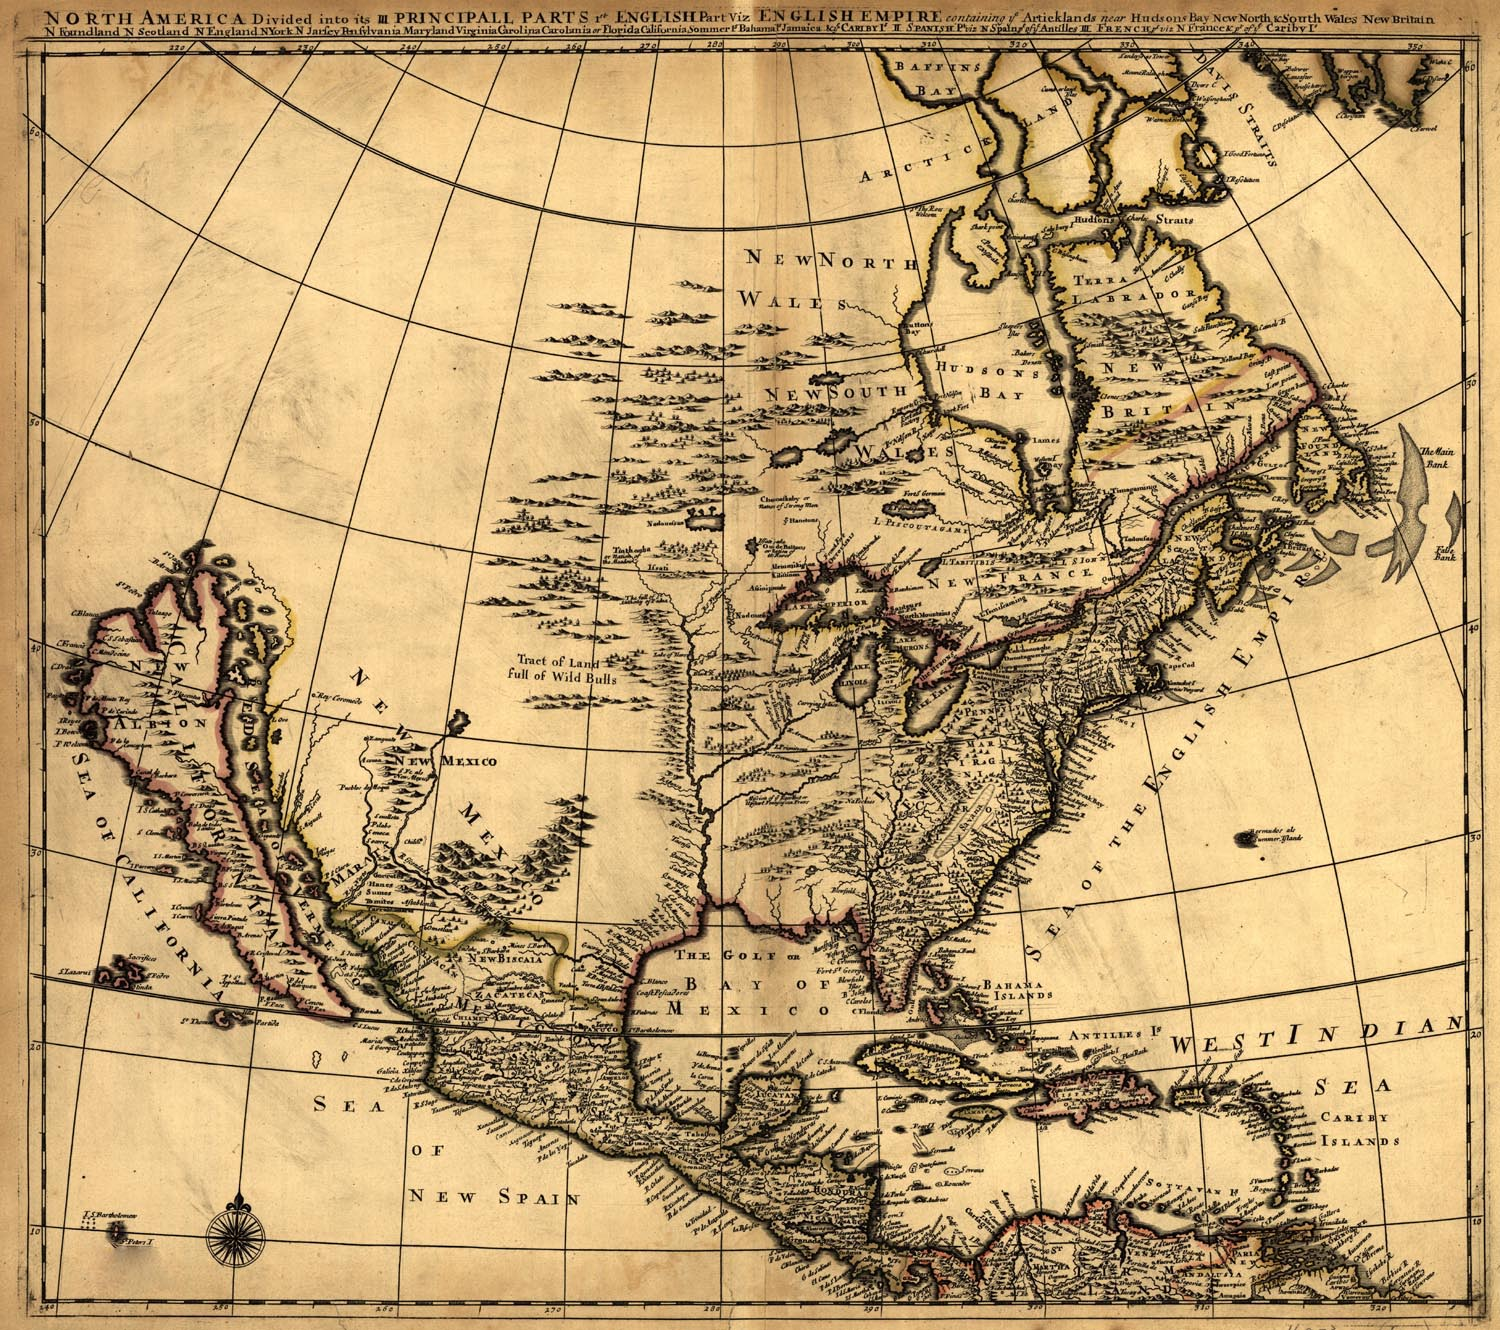 Map of United States in 1600s